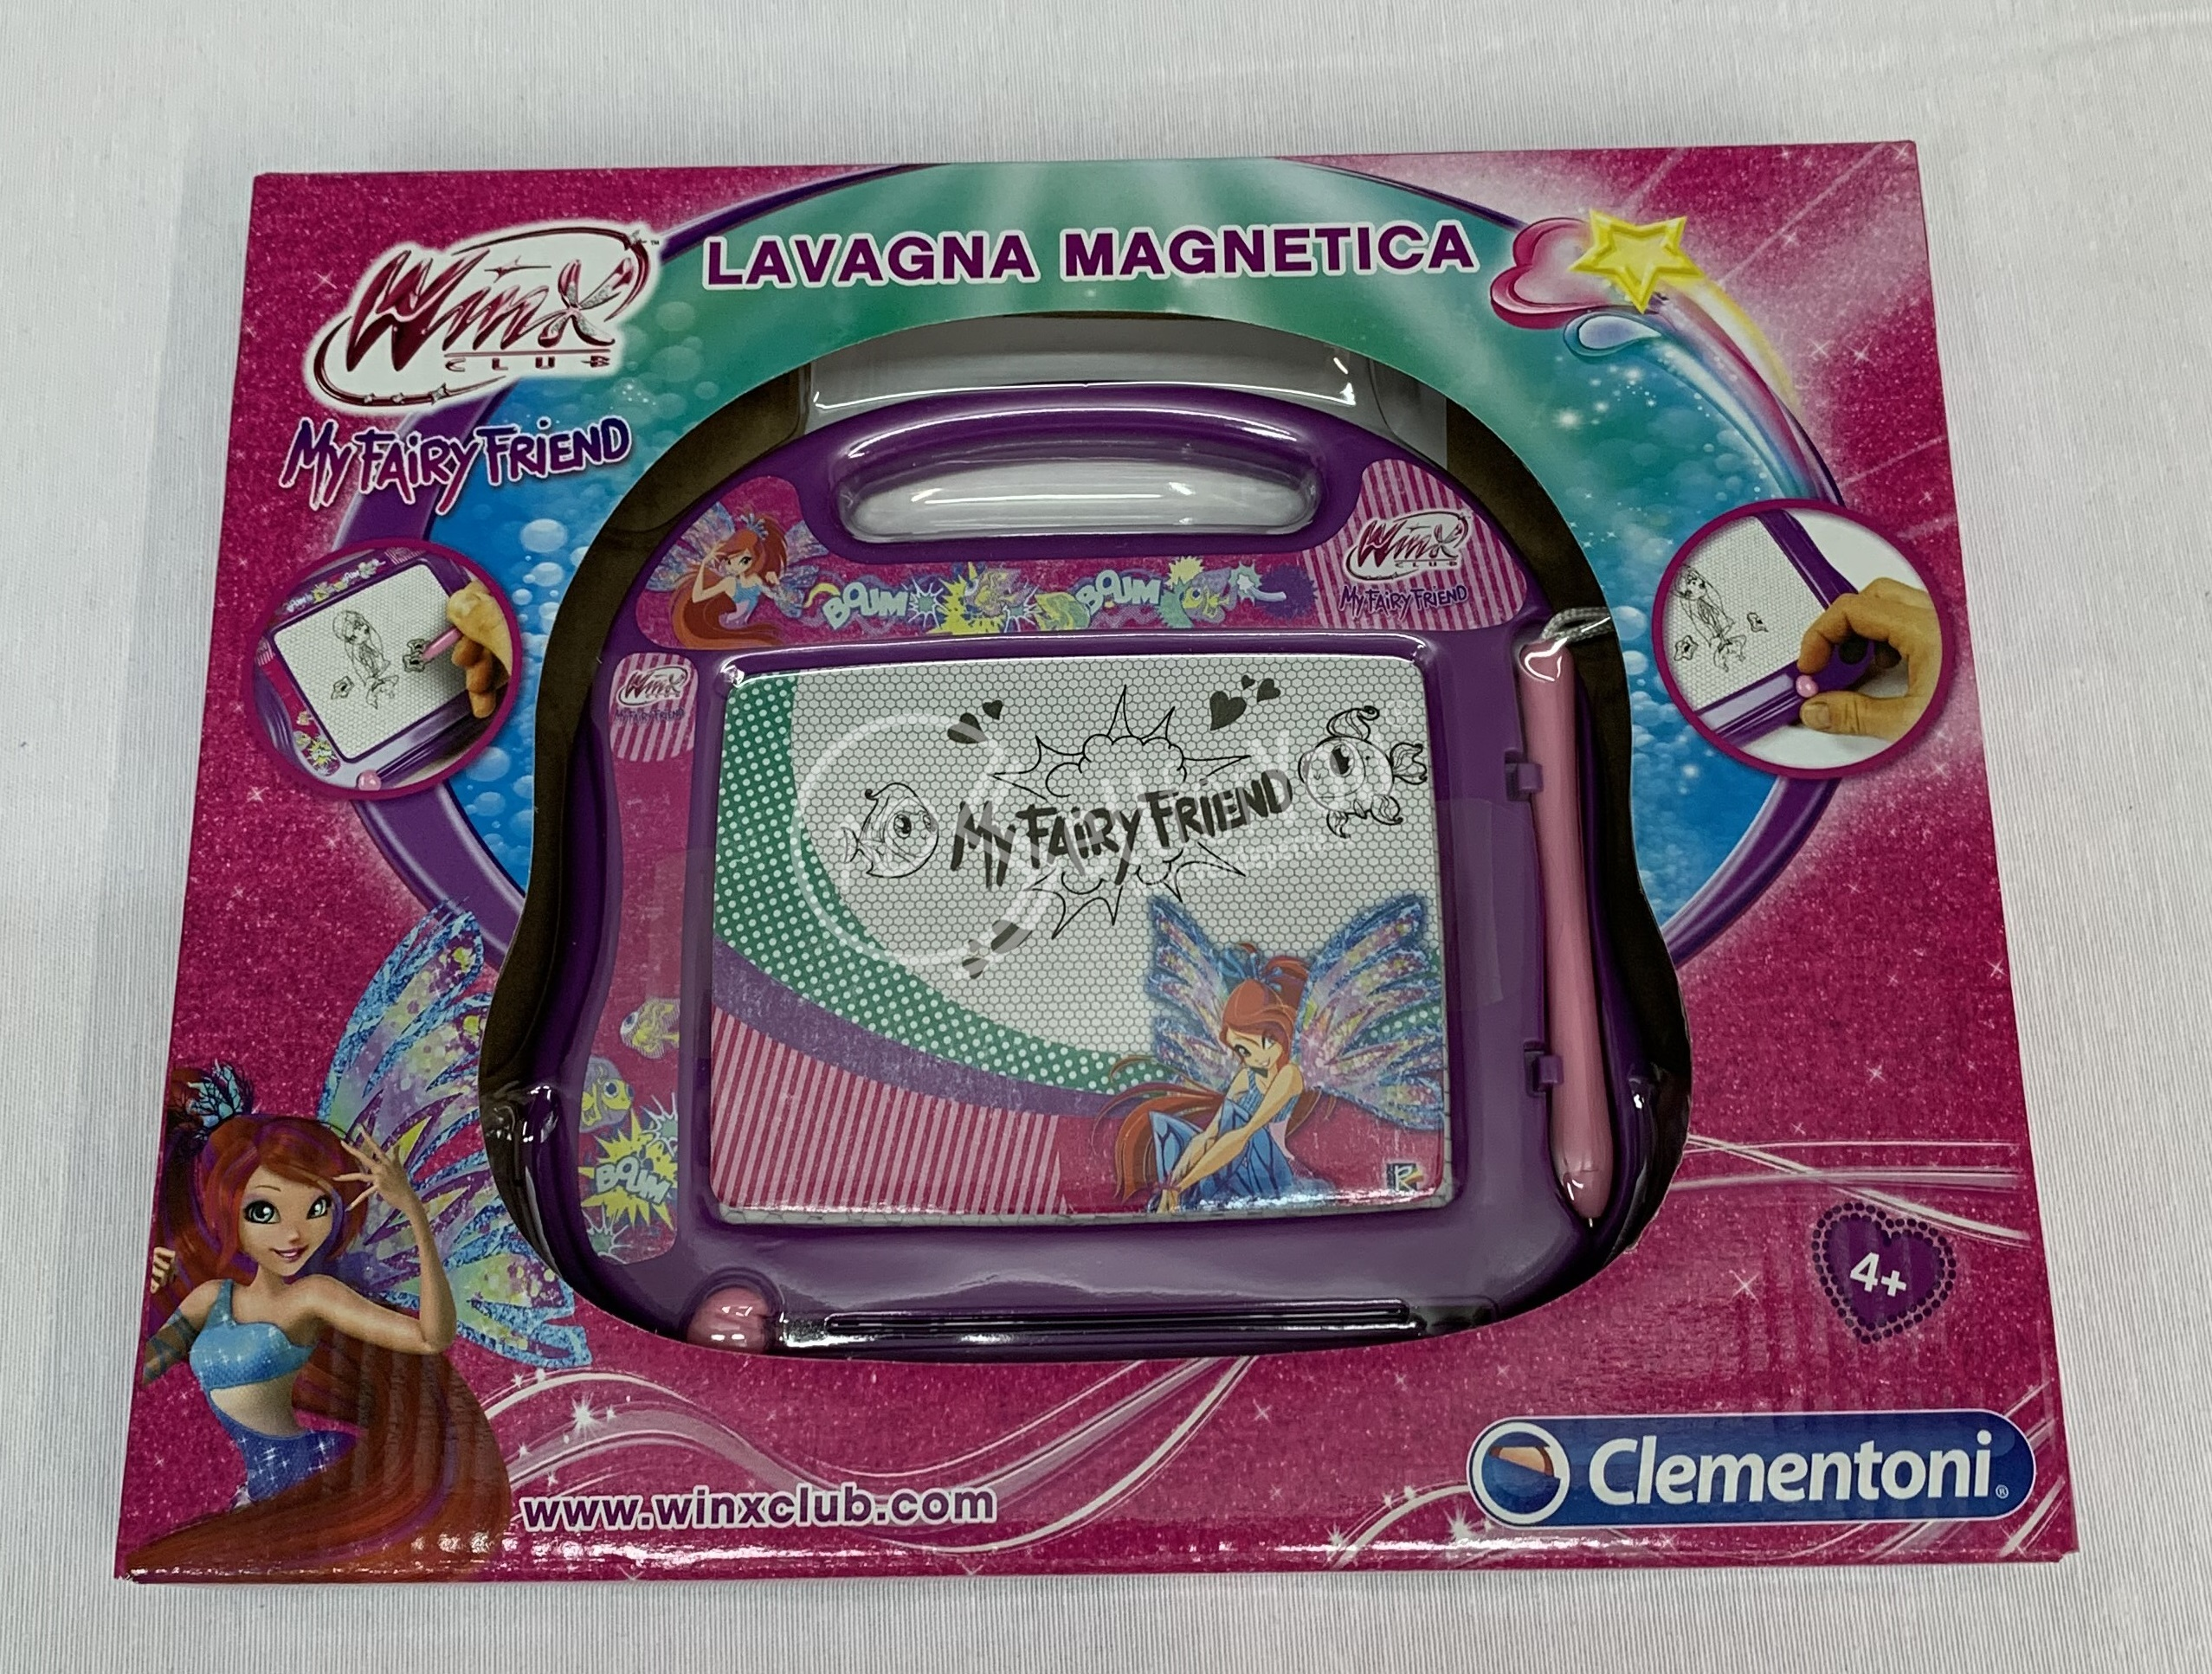 Lavagna magnetica Winx - Clementoni 15785 sellforyou